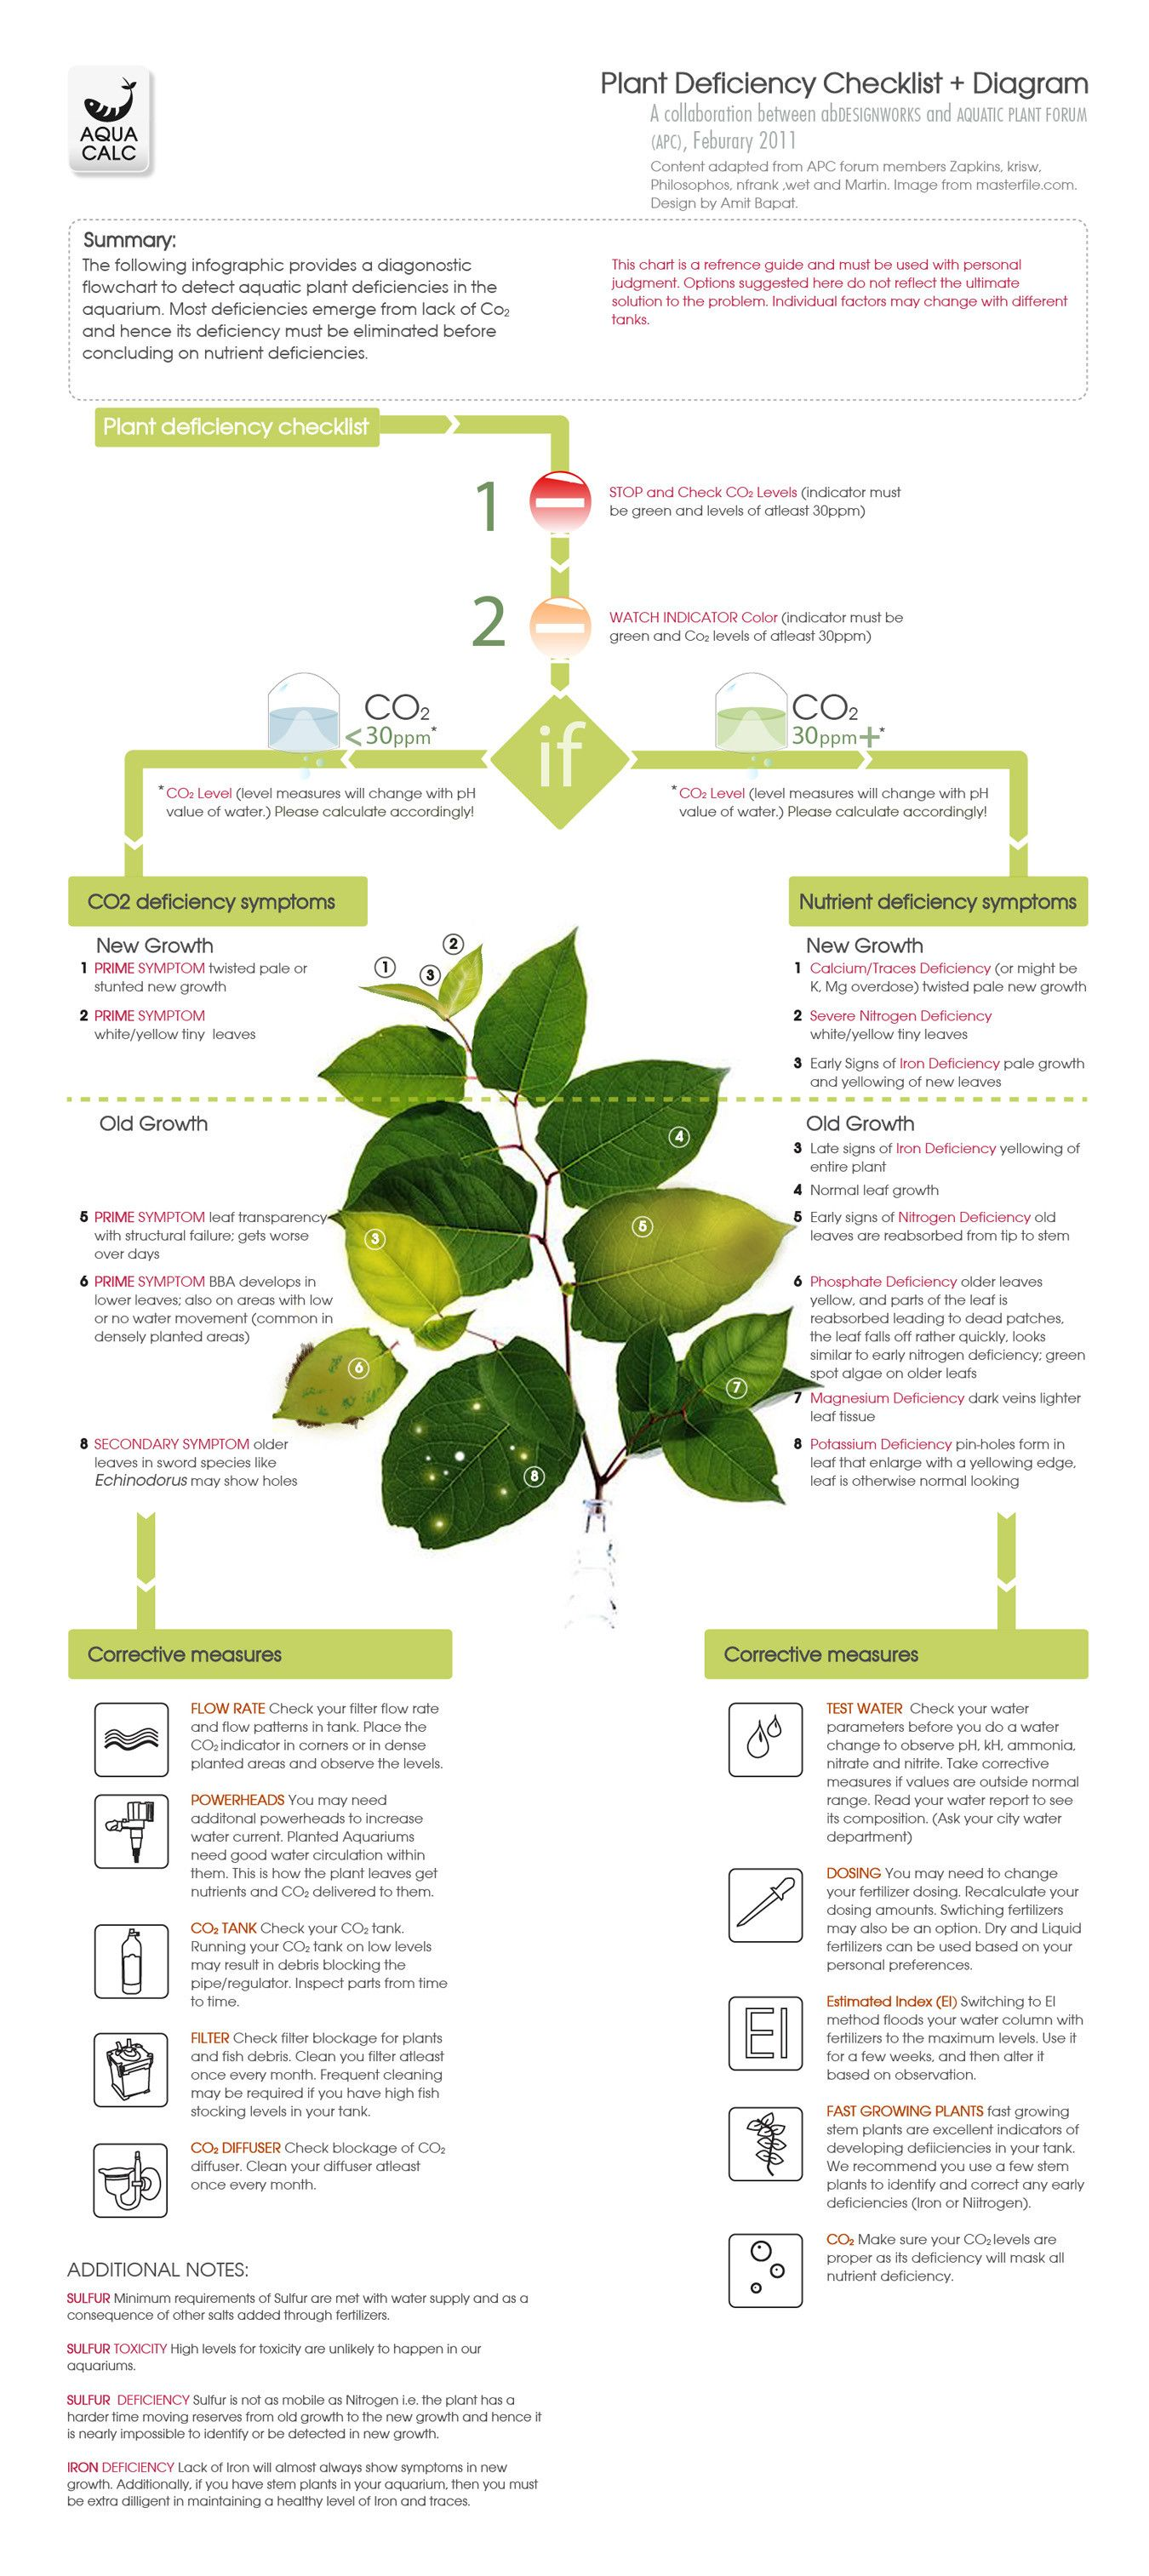 Plant Deficiency Checklist